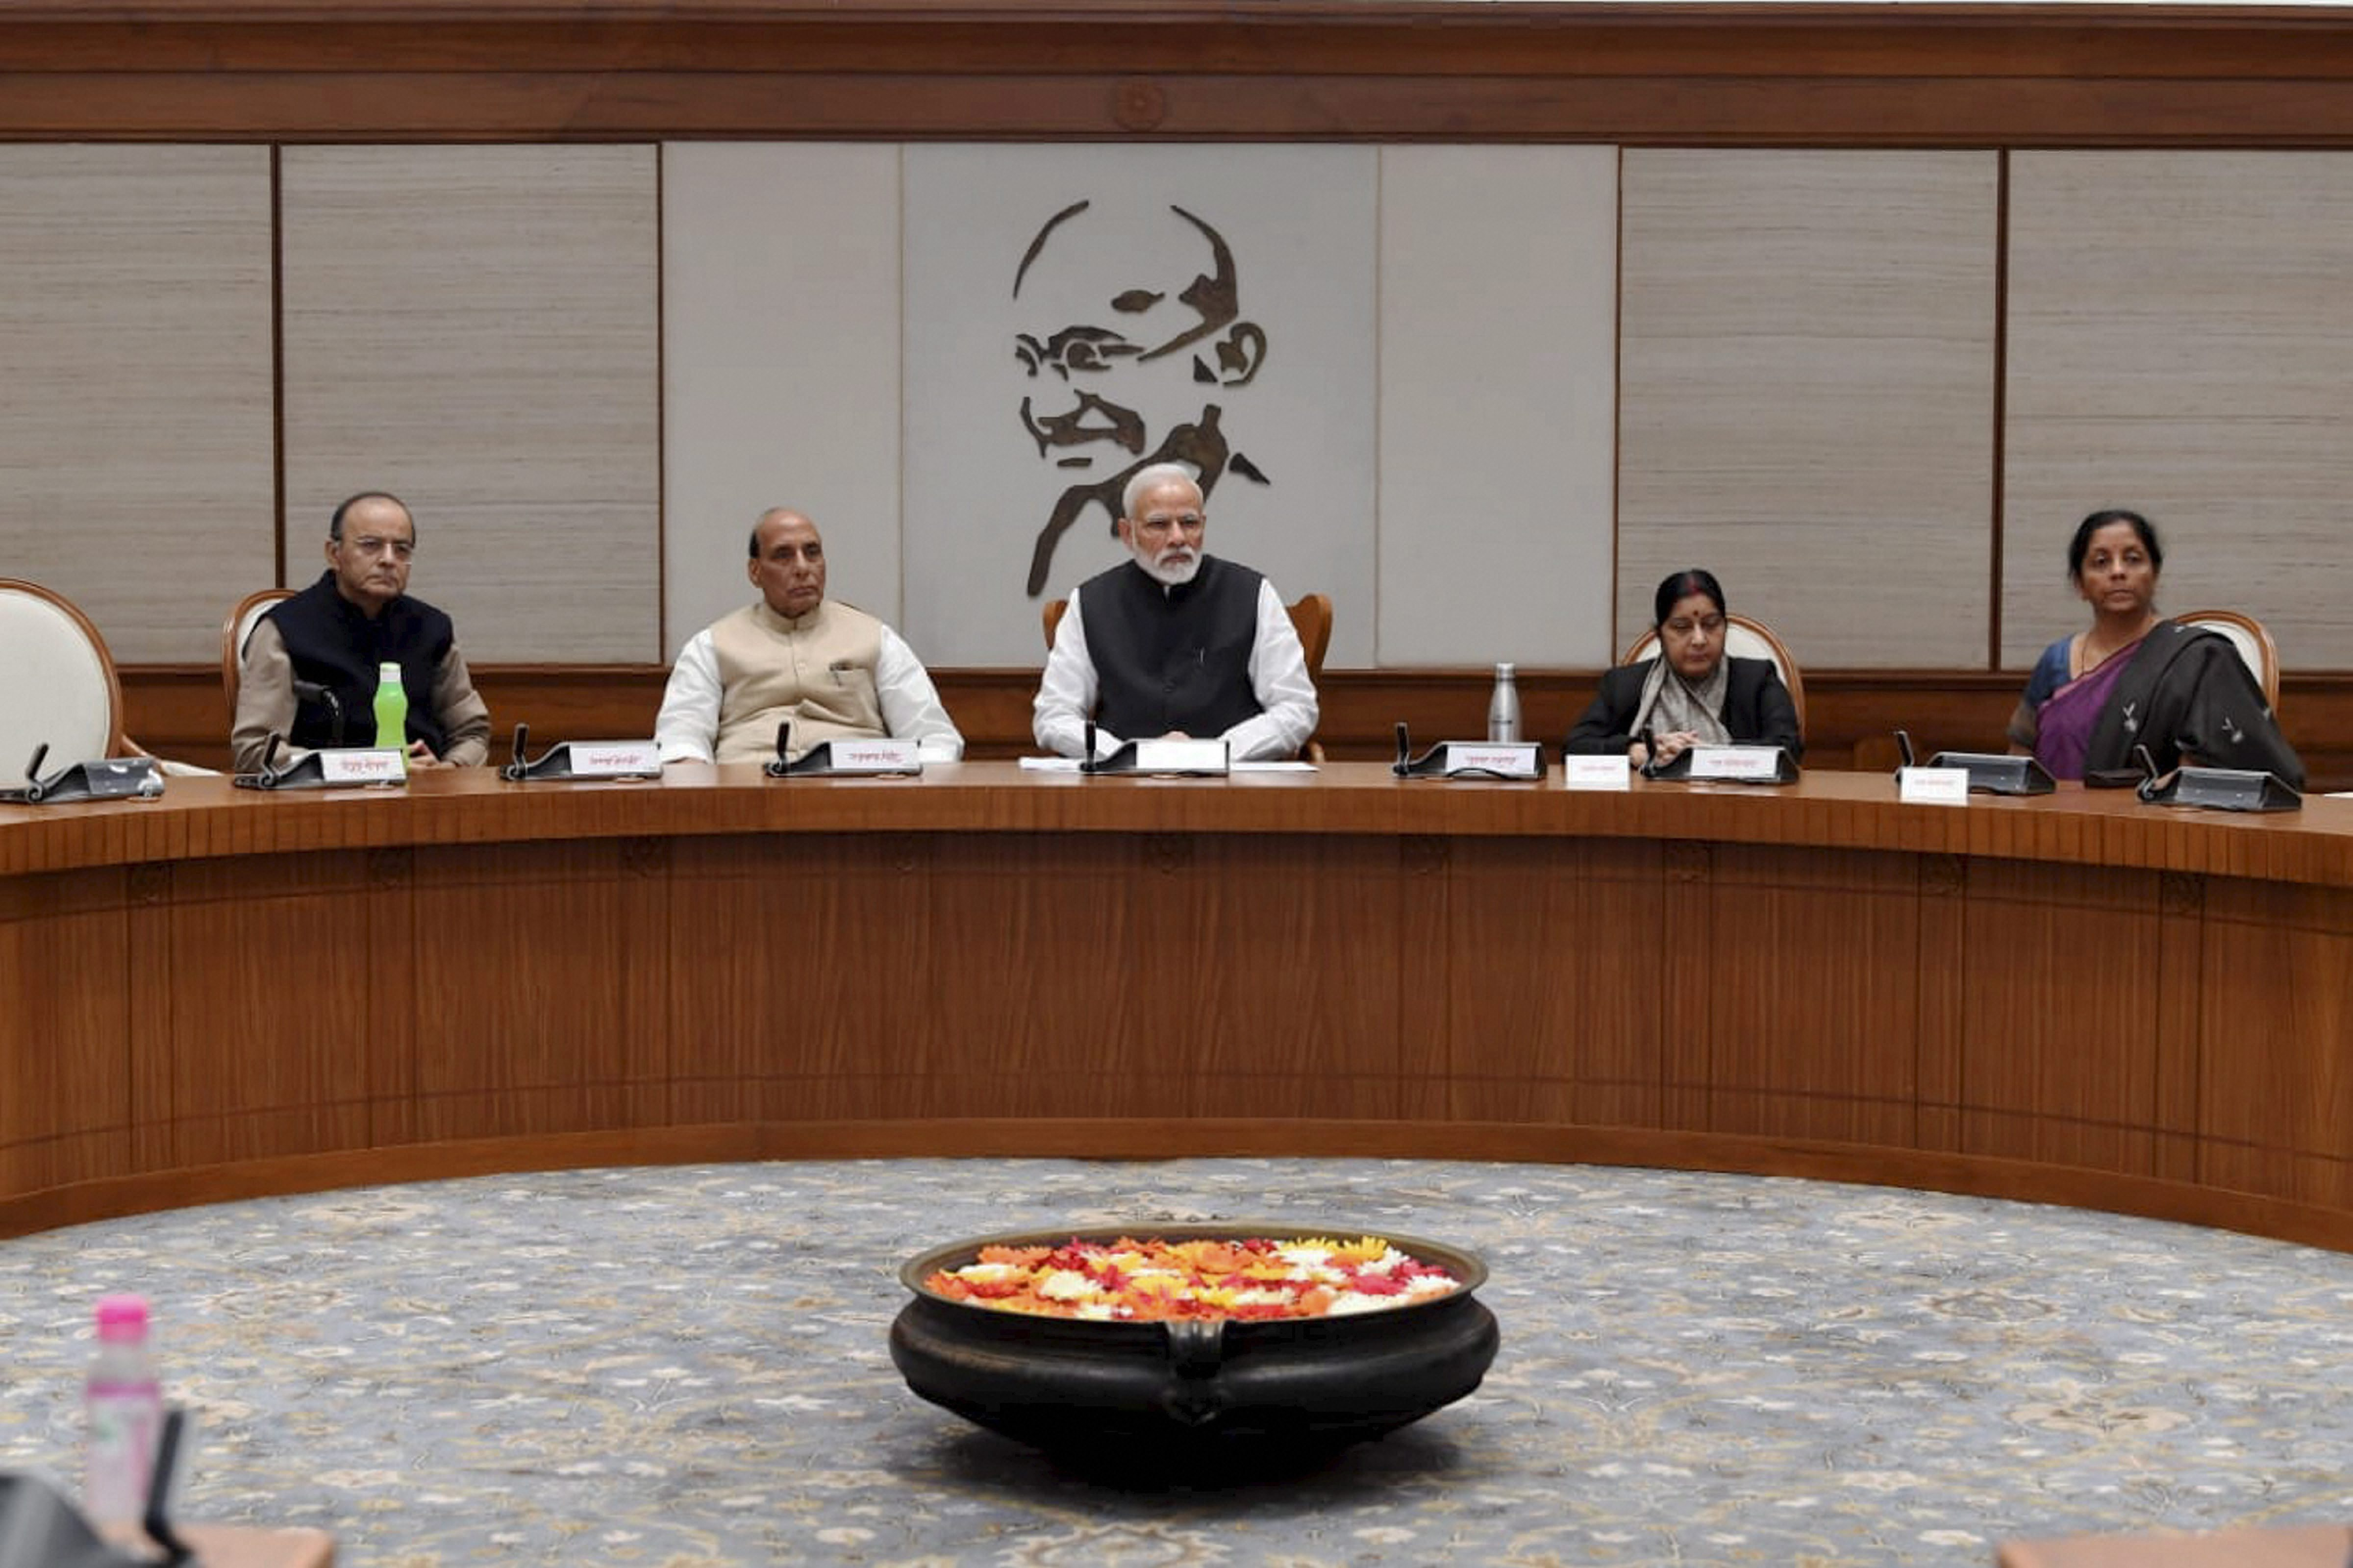 (From left) Finance minister Arun Jaitley, home minister Rajnath Singh, Prime Minister Narendra Modi, external affairs minister Sushma Swaraj and defence minister Nirmala Sitharaman during a Cabinet Committee on Security meeting to discuss the Pulwama terror attack.